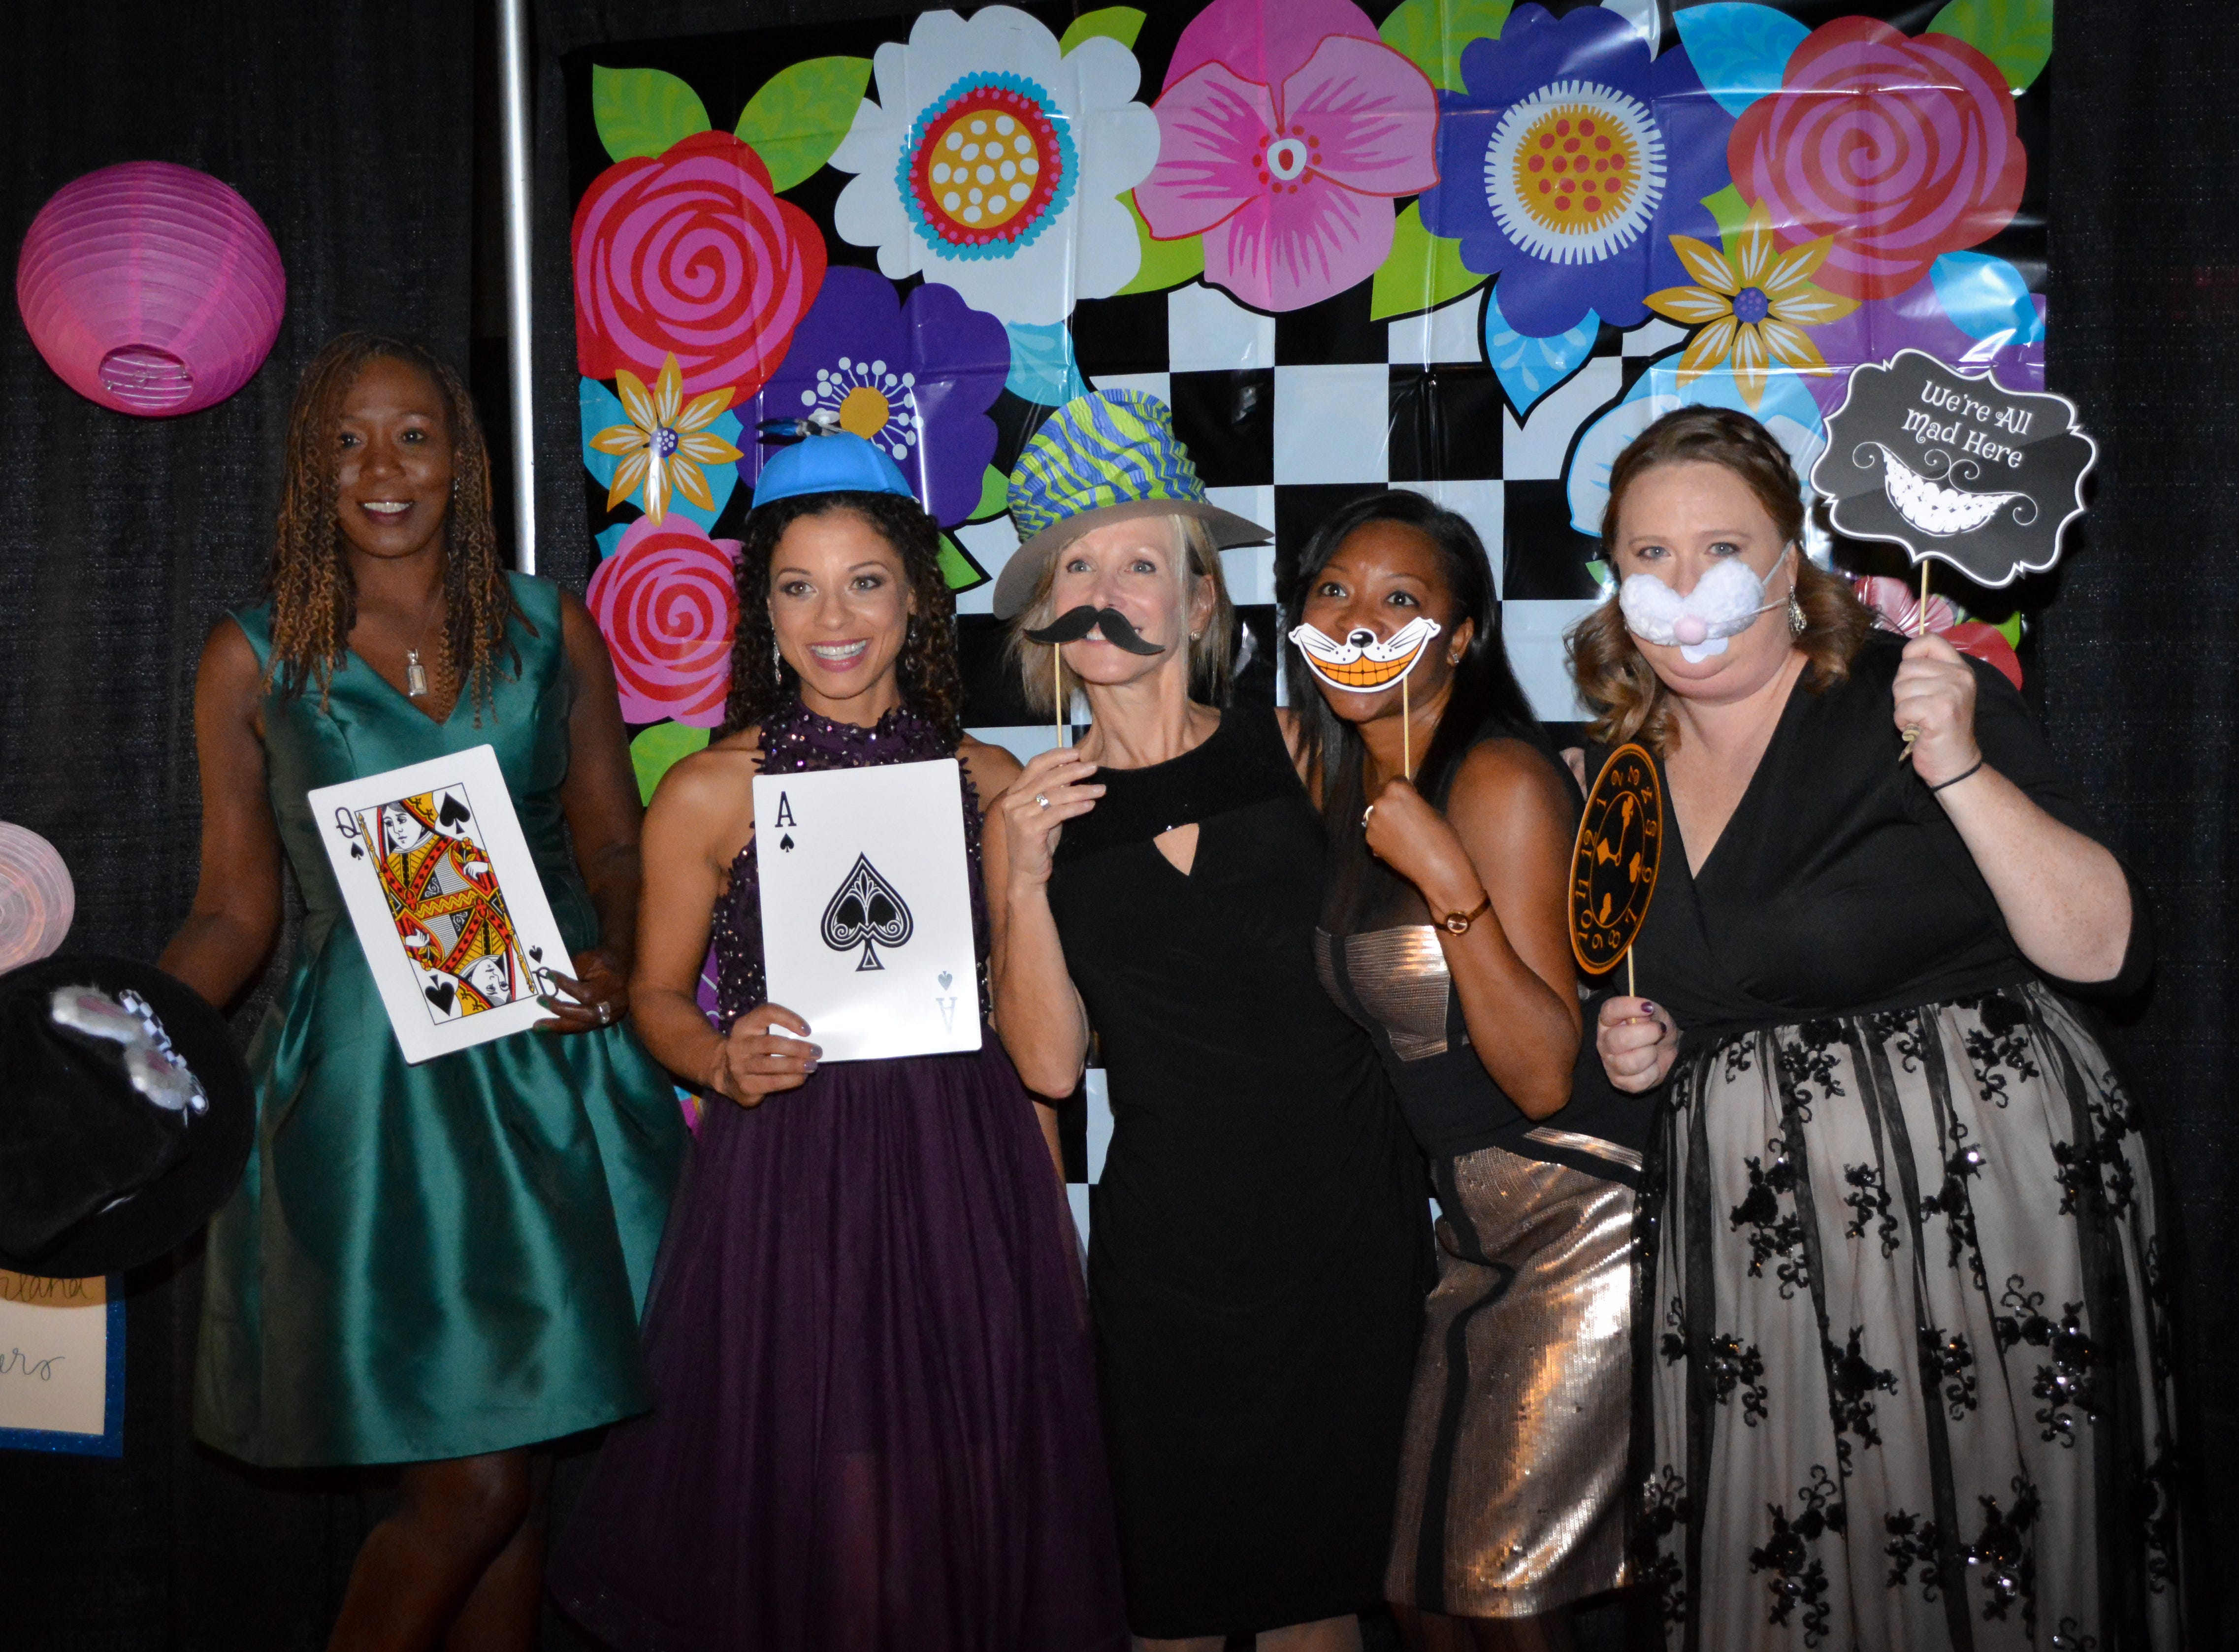 """Guests at the Minds in Motion Museum """"A Wonderland Adventure Gala"""" pose for a photo on Nov. 3, 2018 at the Wicomico Youth & Civic Center."""